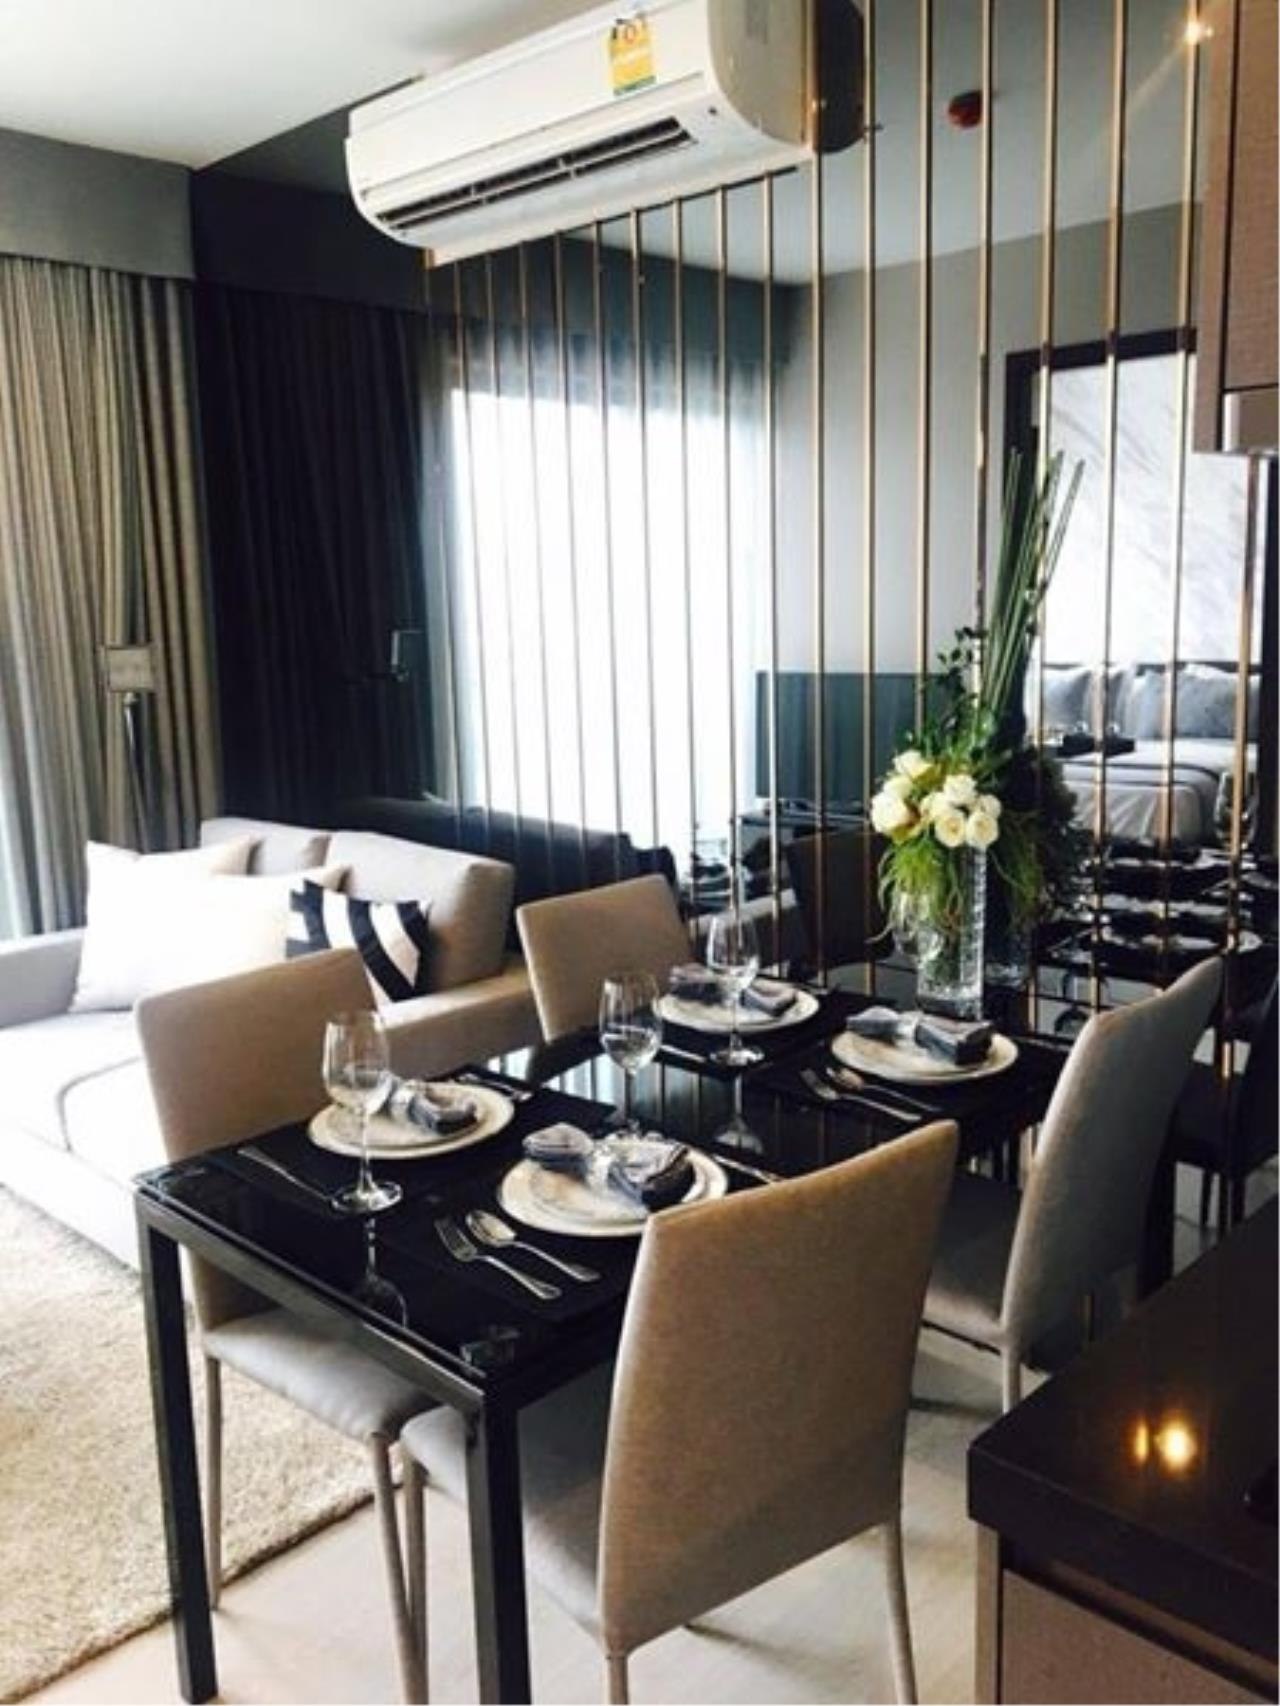 RE/MAX All Star Realty Agency's Rhythm Asoke beautiful rooms for sale/rent 3